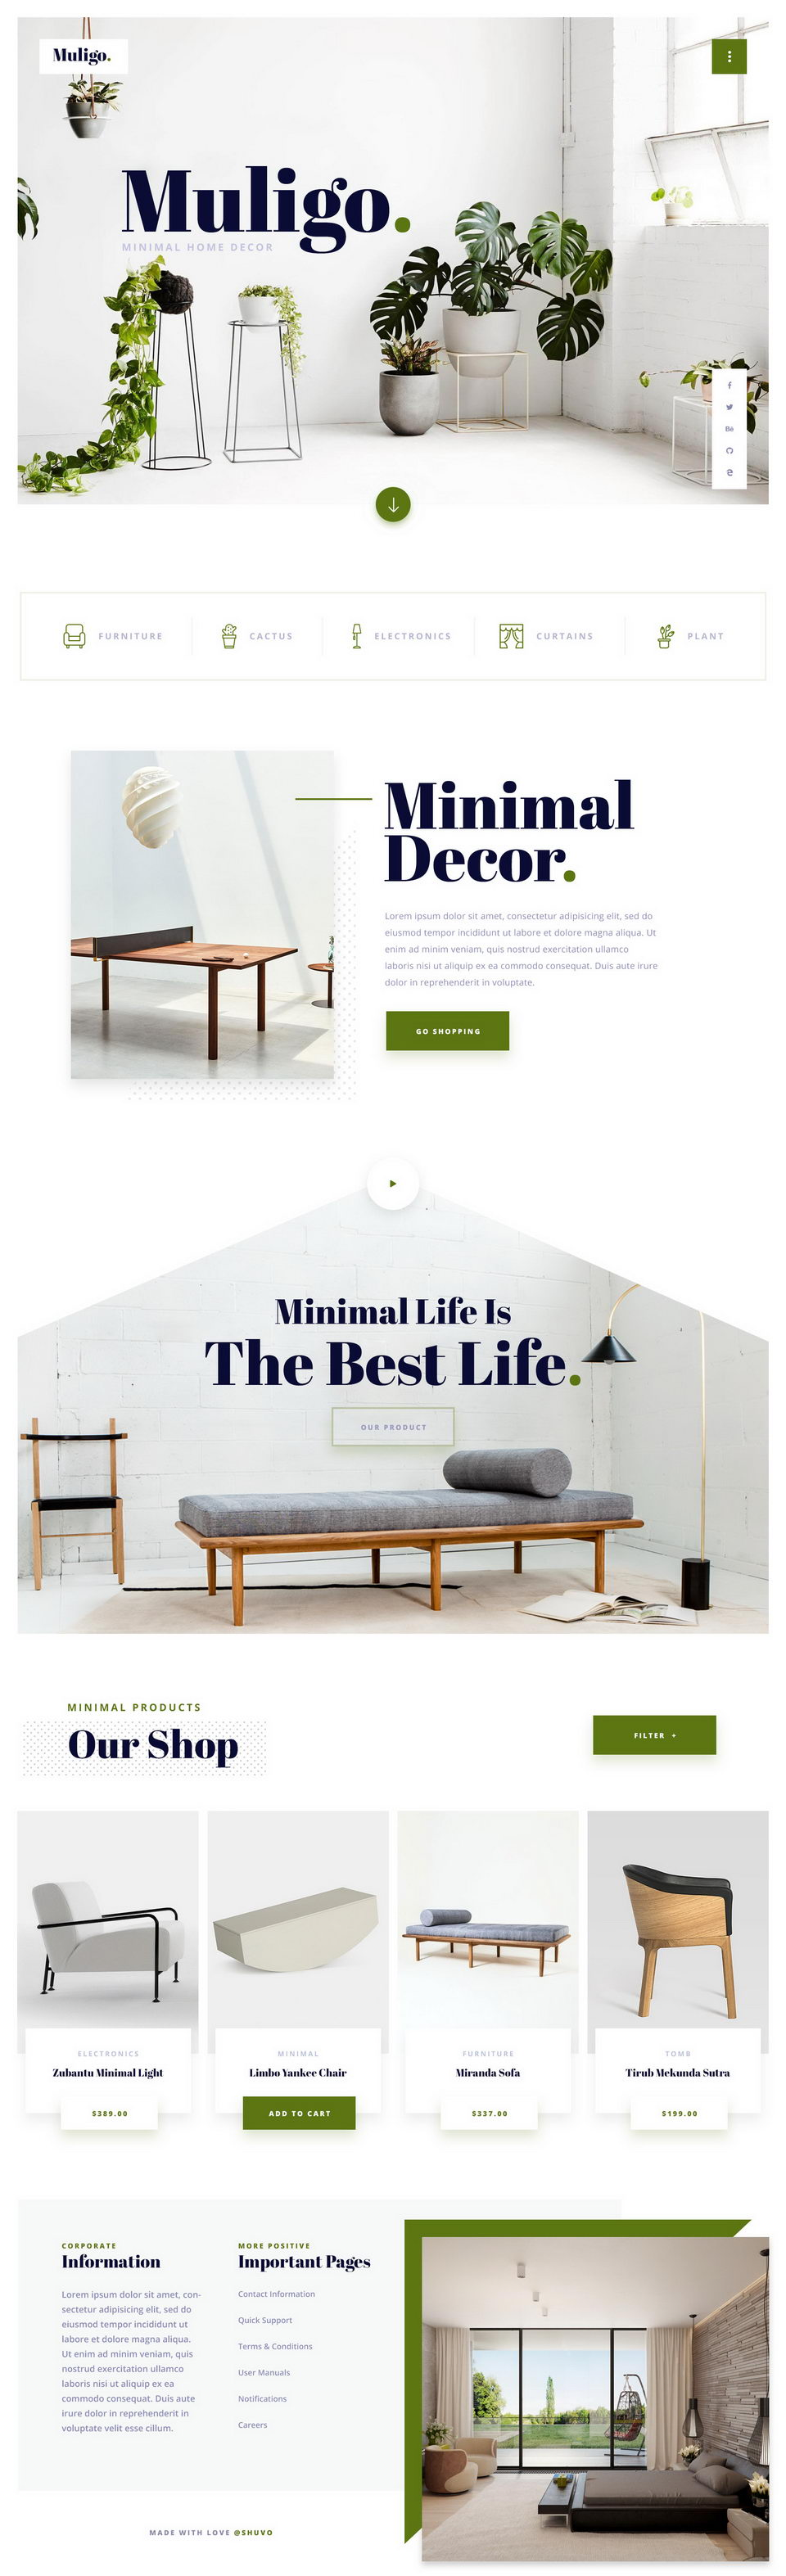 Muligo Ia A Free Minimal Home Decor Website Exploration Psd Template It S Also Suits For Creative Agencies Designers Fashion And Arel Websites